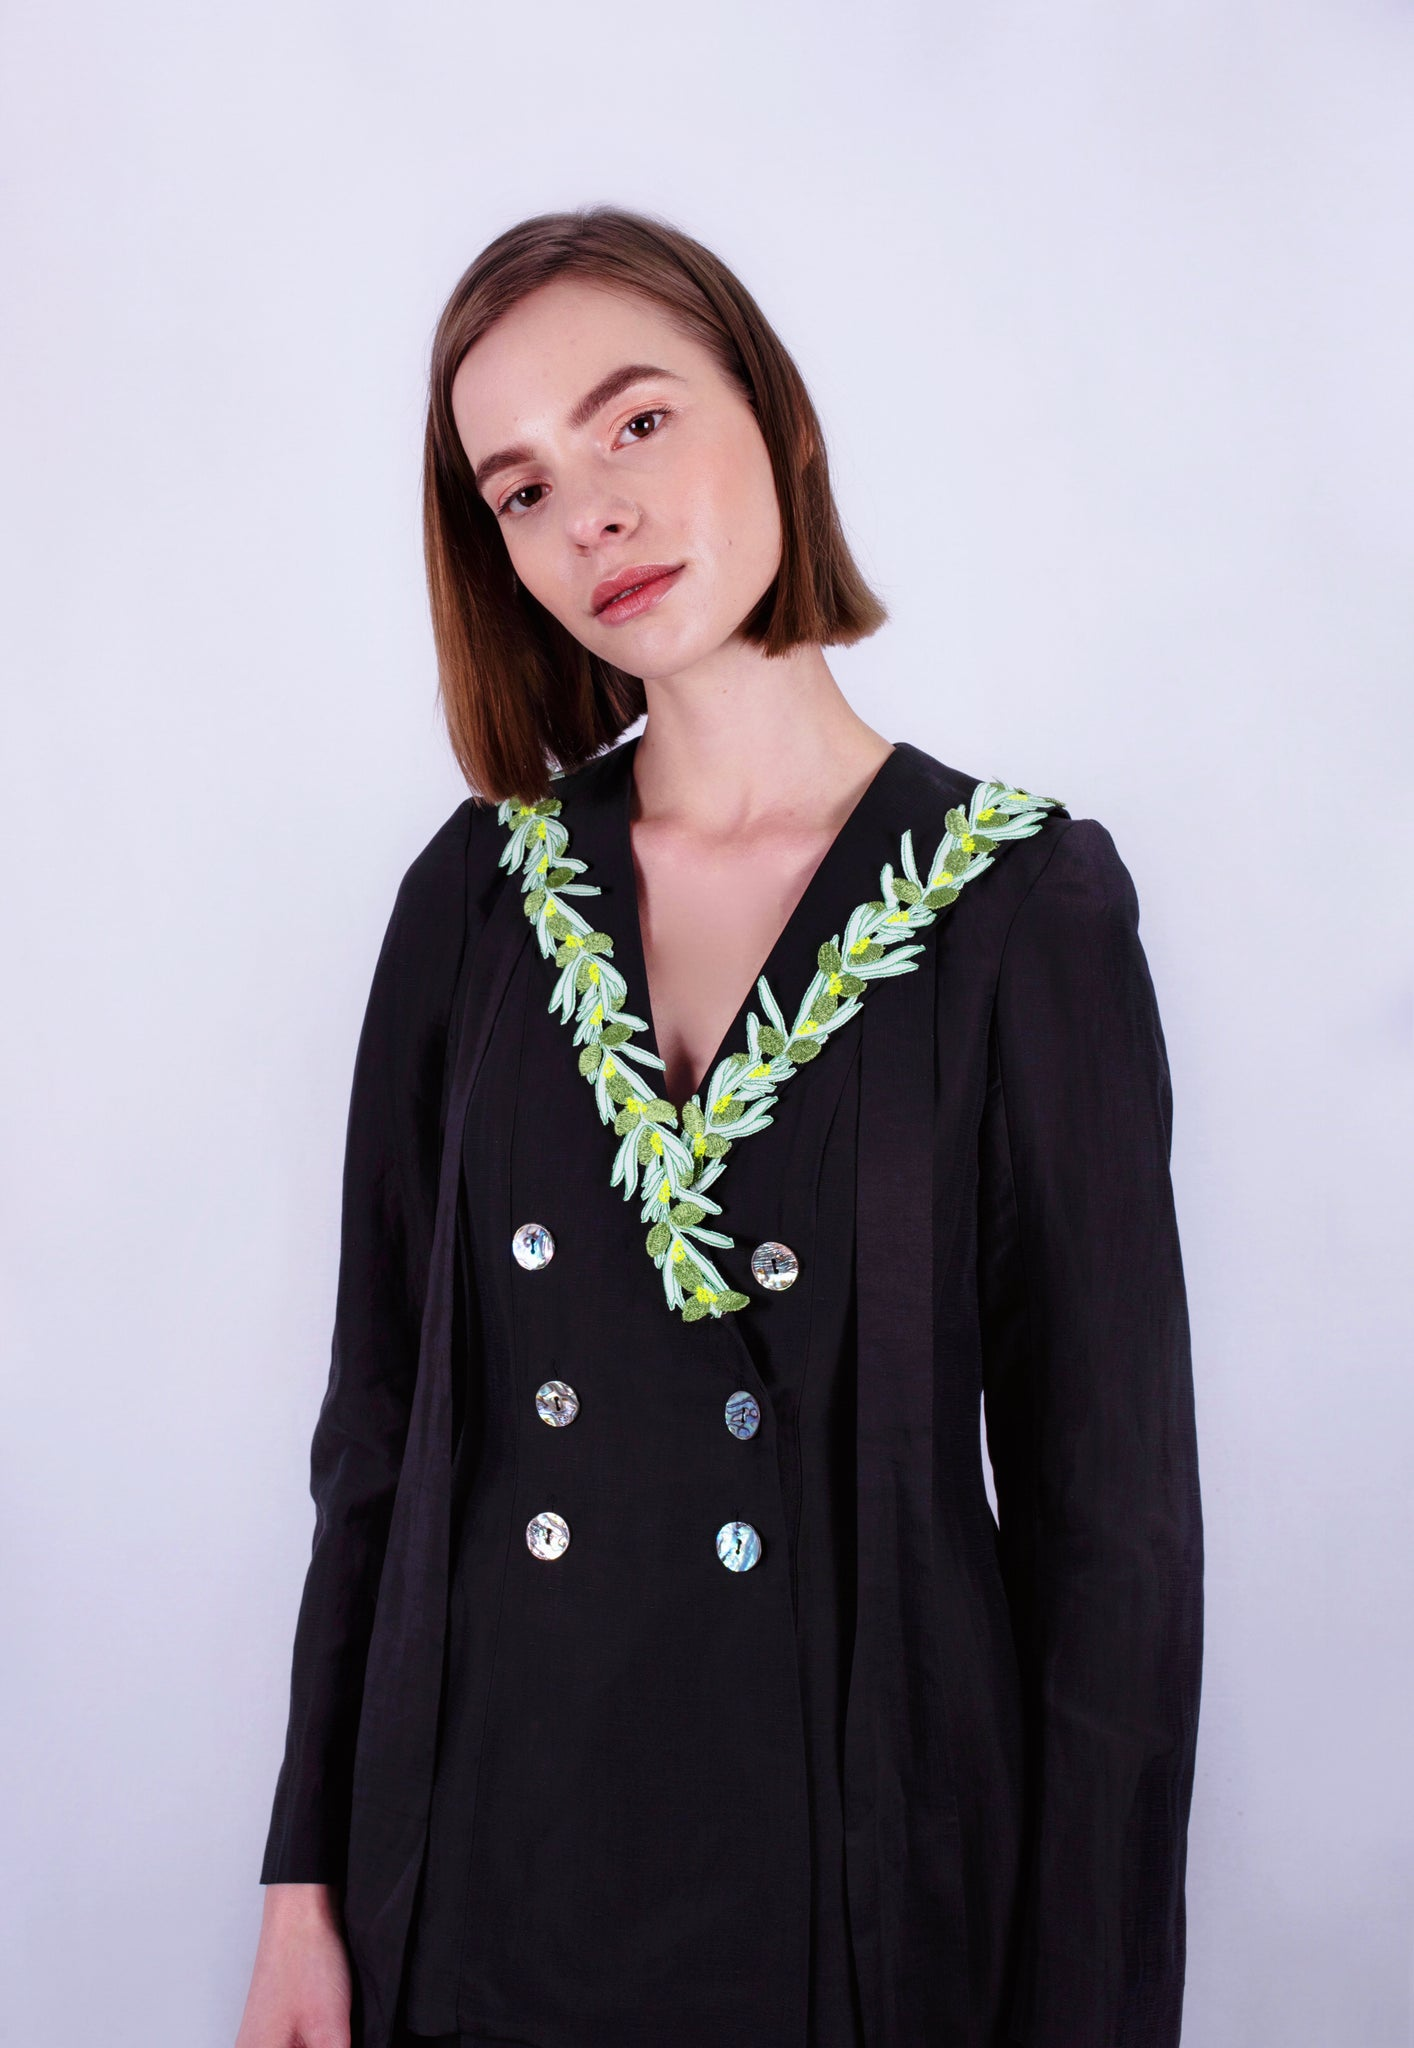 Olive Garland Suit Jacket